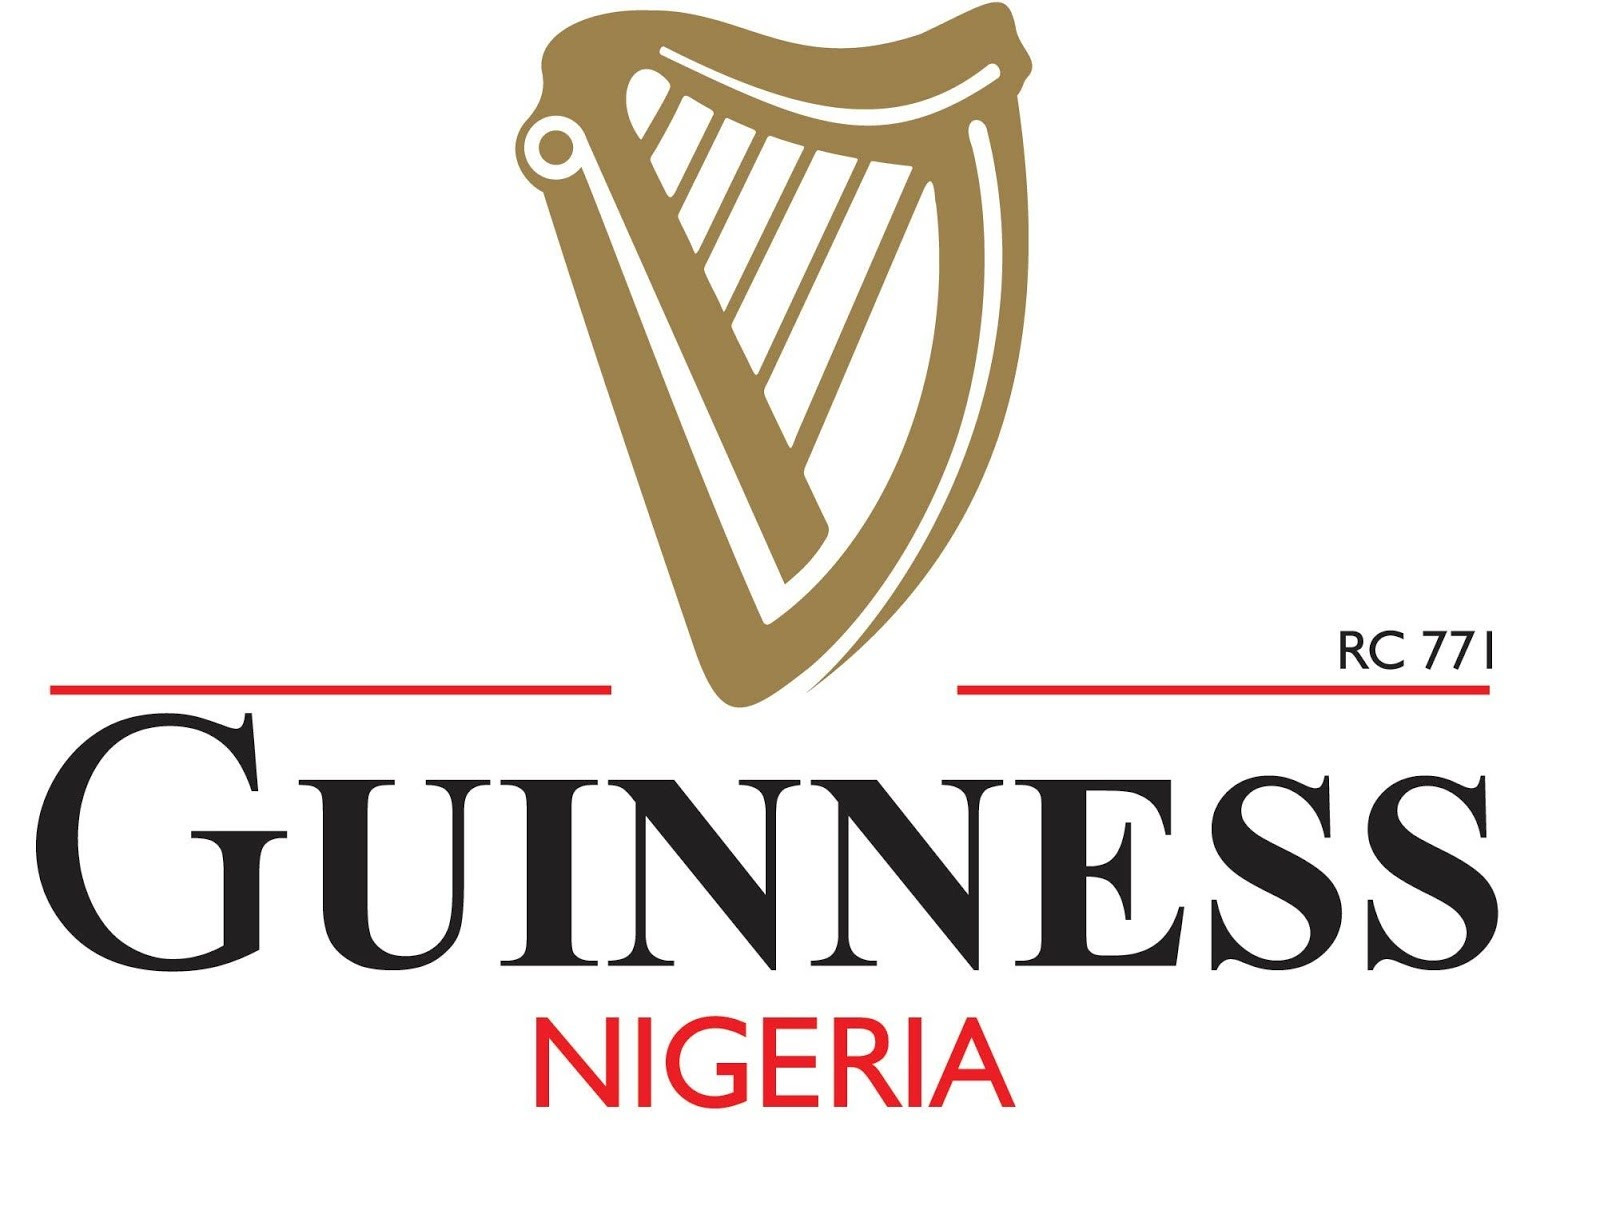 Senior Brand Manager Innovation Commercialization at Guinness Nigeria Plc